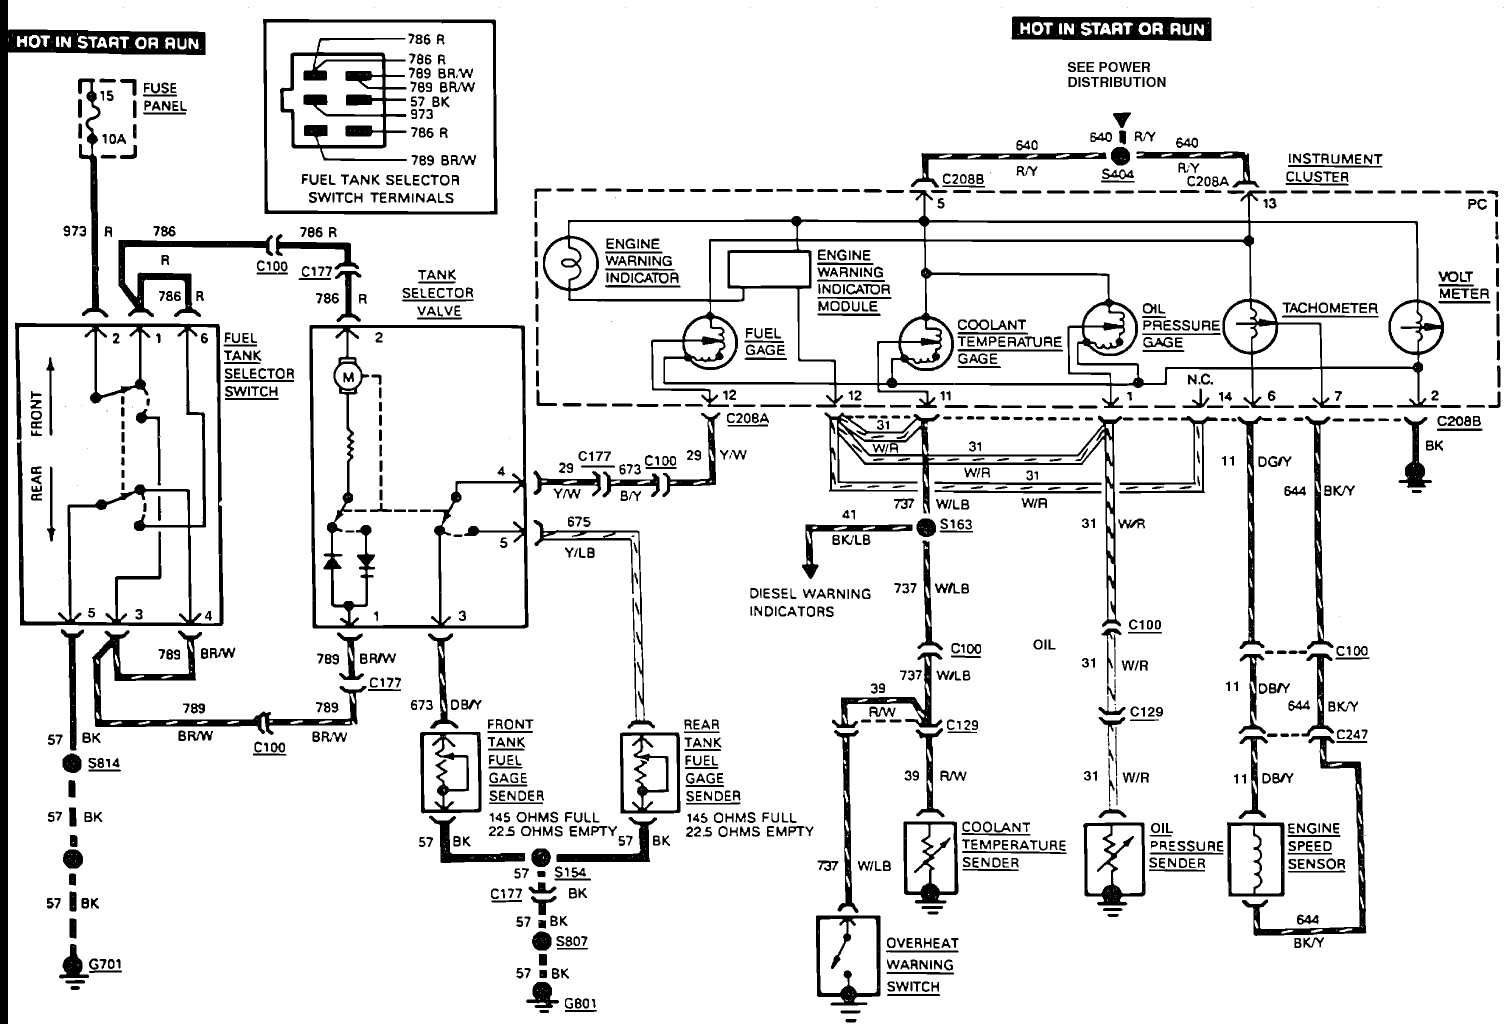 e350 wiring schematic ford e350 wiring diagram | free wiring diagram